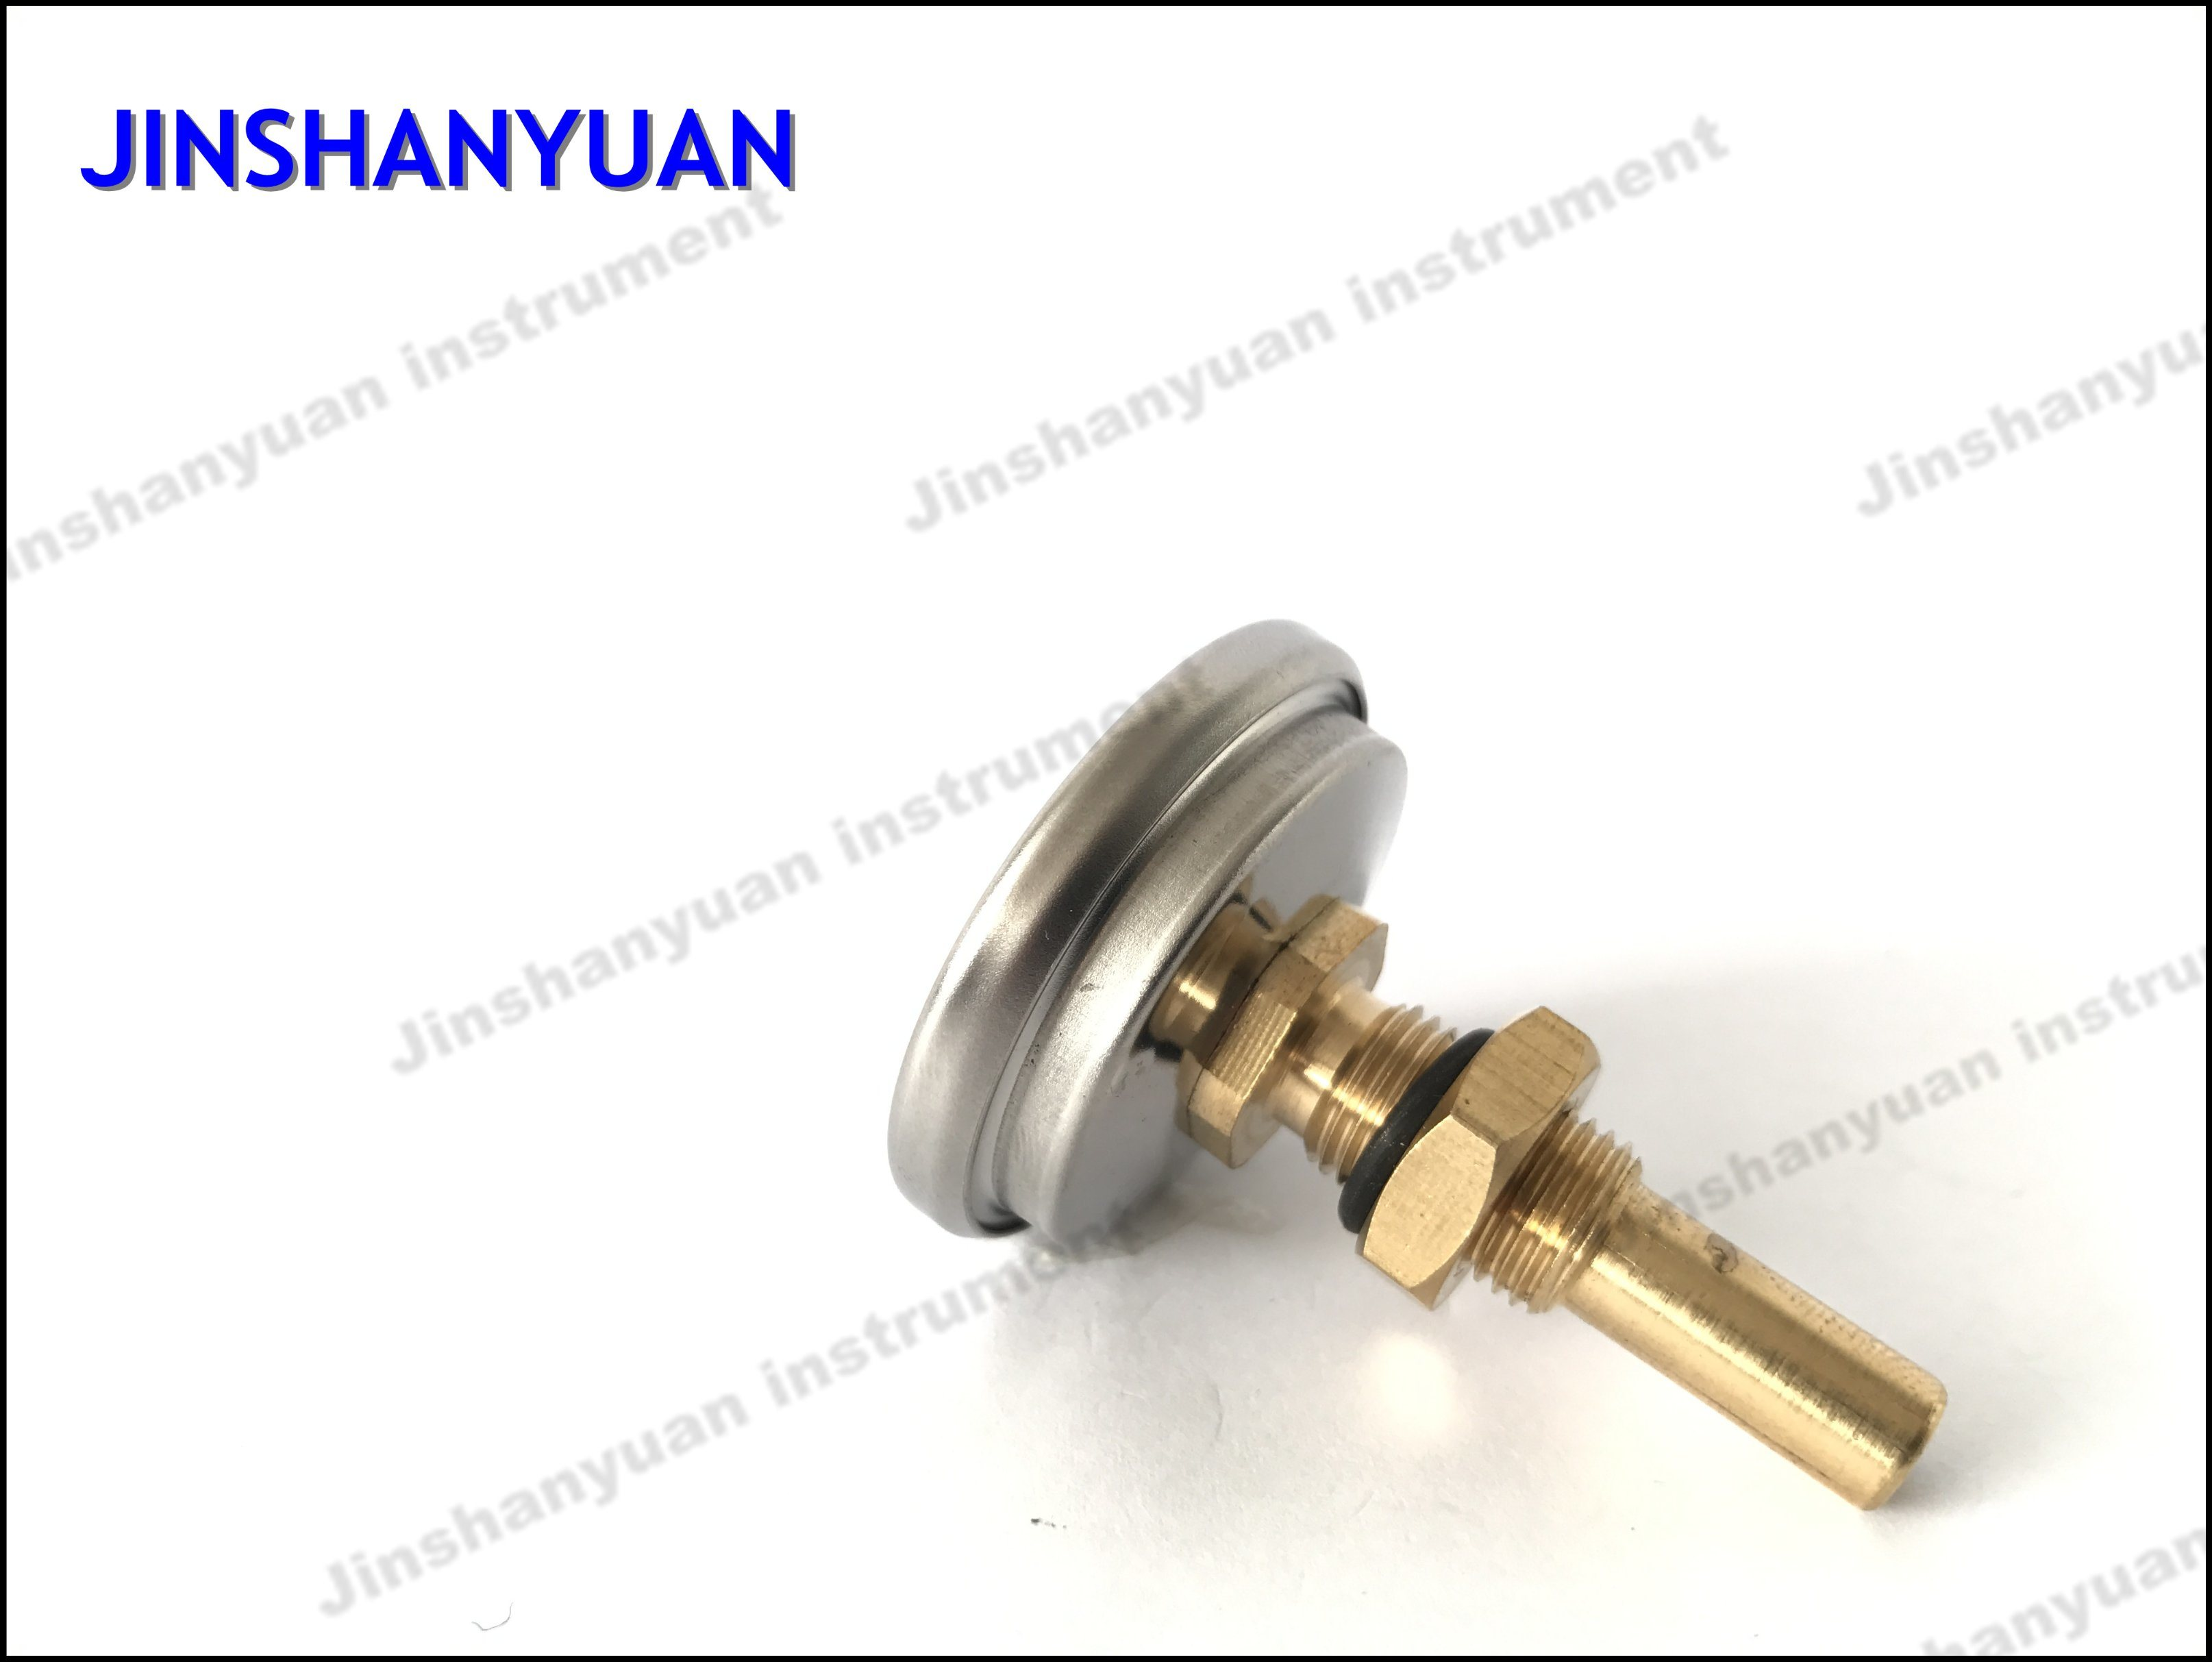 Bt-003 Stainless Steel with Nuts for Bimetal Thermometer